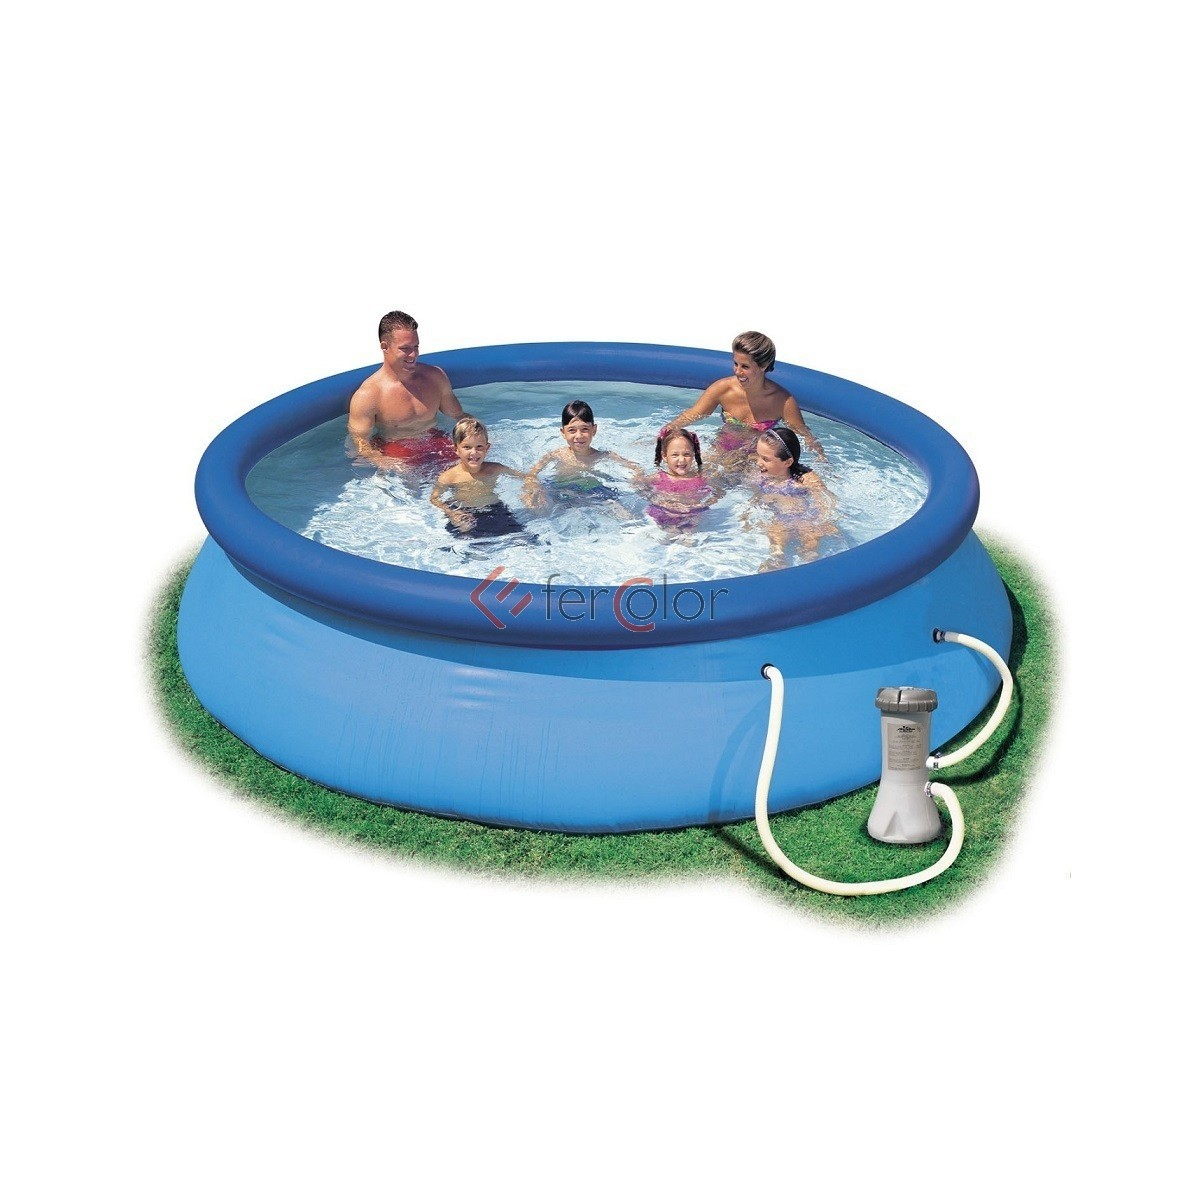 Intex Piscina Gonfiabile Piscina Intex Easy Set 366x76 Tonda Con Pompa Filtro